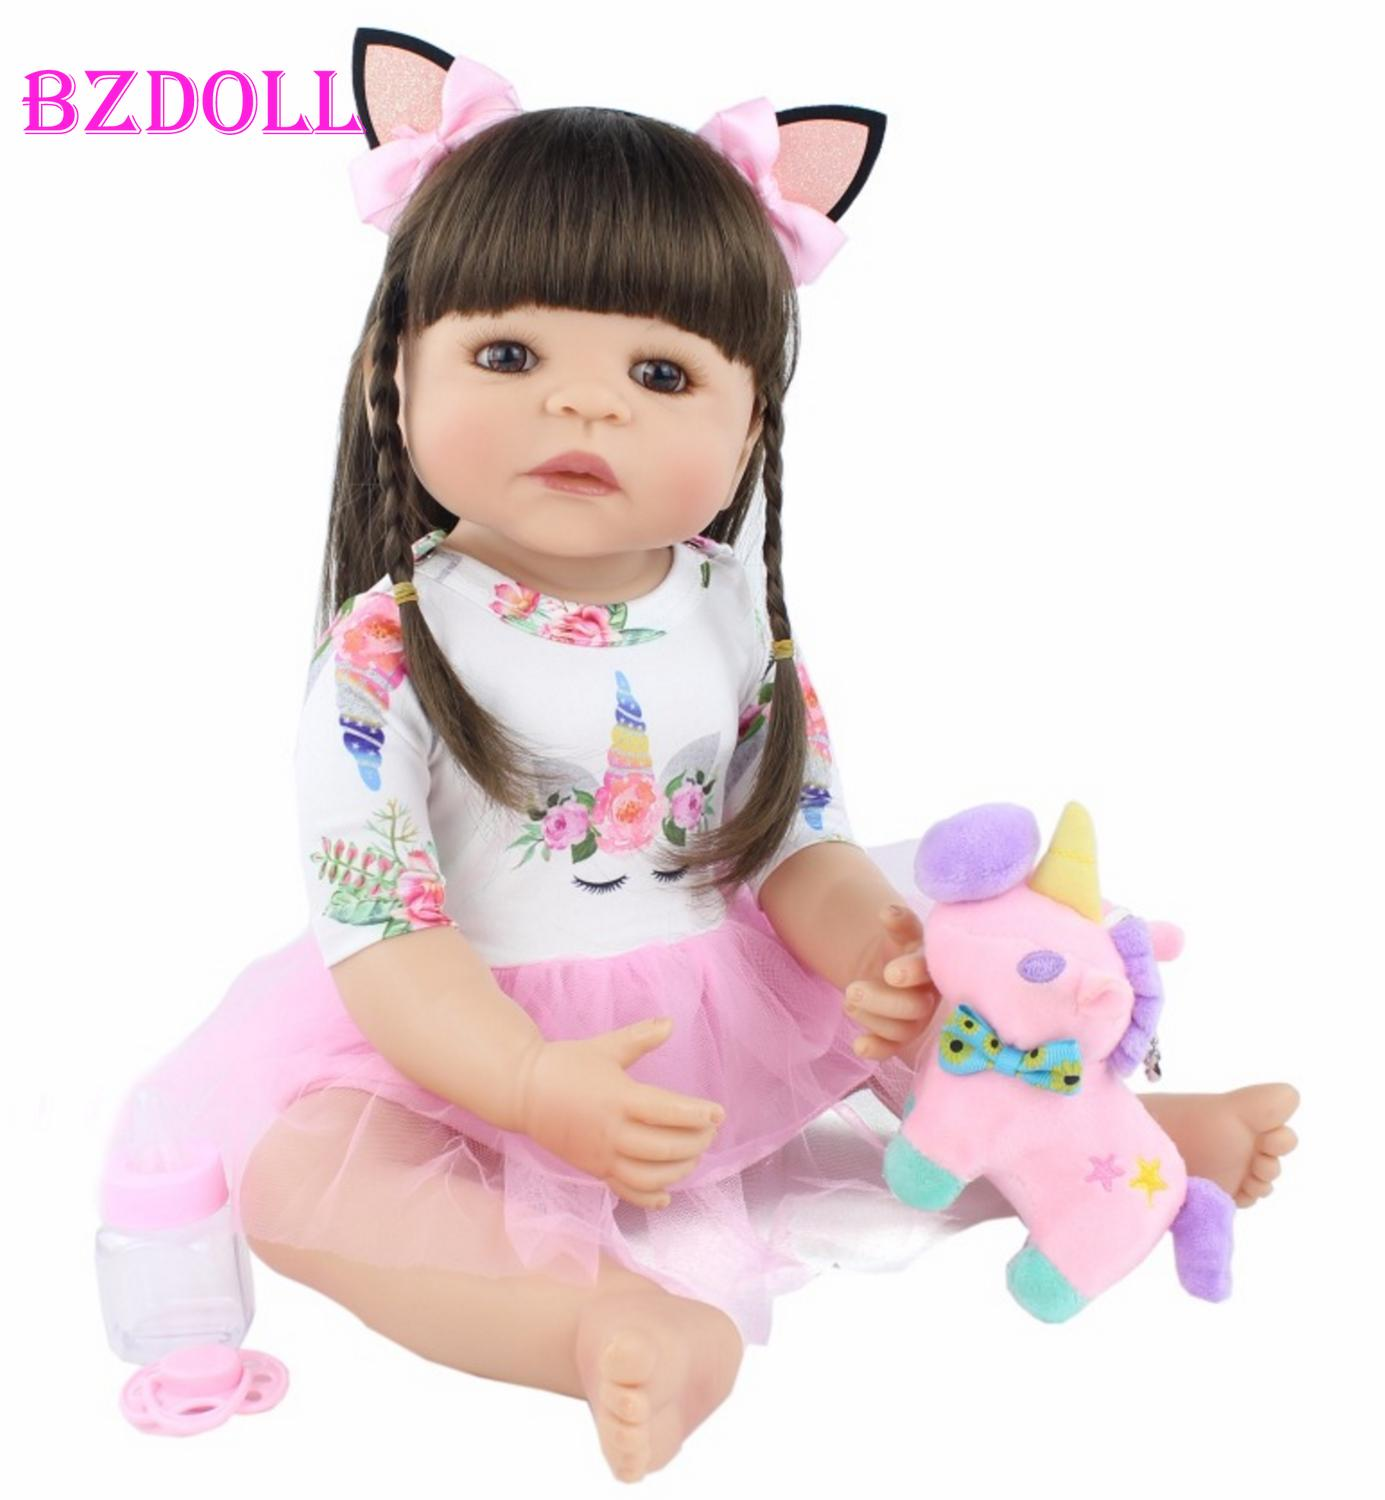 55cm Full Silicone Reborn Baby Doll Toy For Girl Newborn Princess Toddler Alive Babies Bebe Classic Boneca Bathe Toy Child Gift(China)